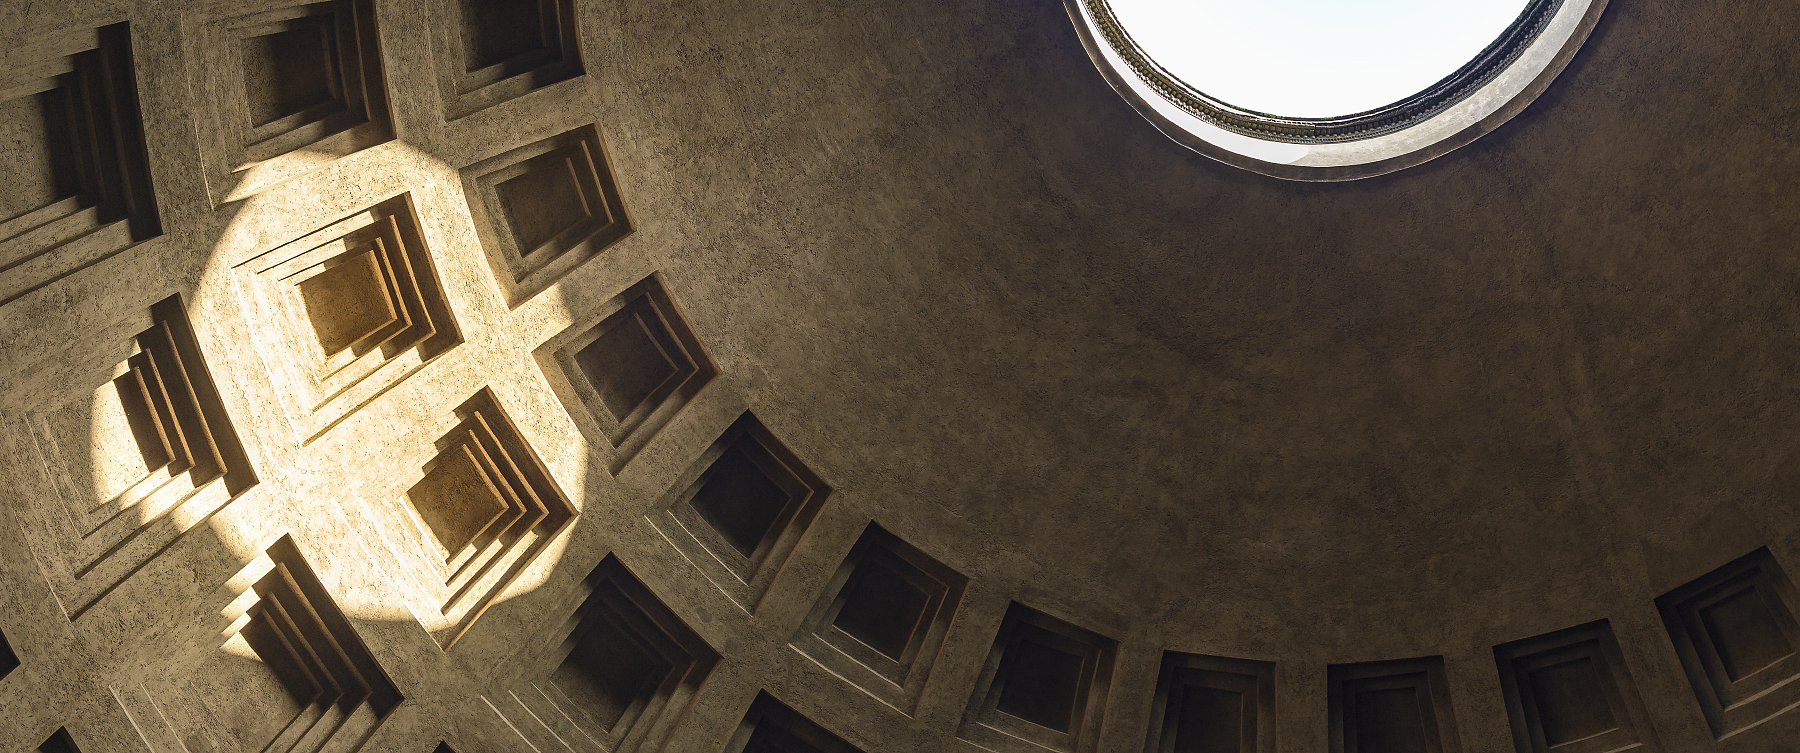 Late-afternoon sunlight in the Pantheon.